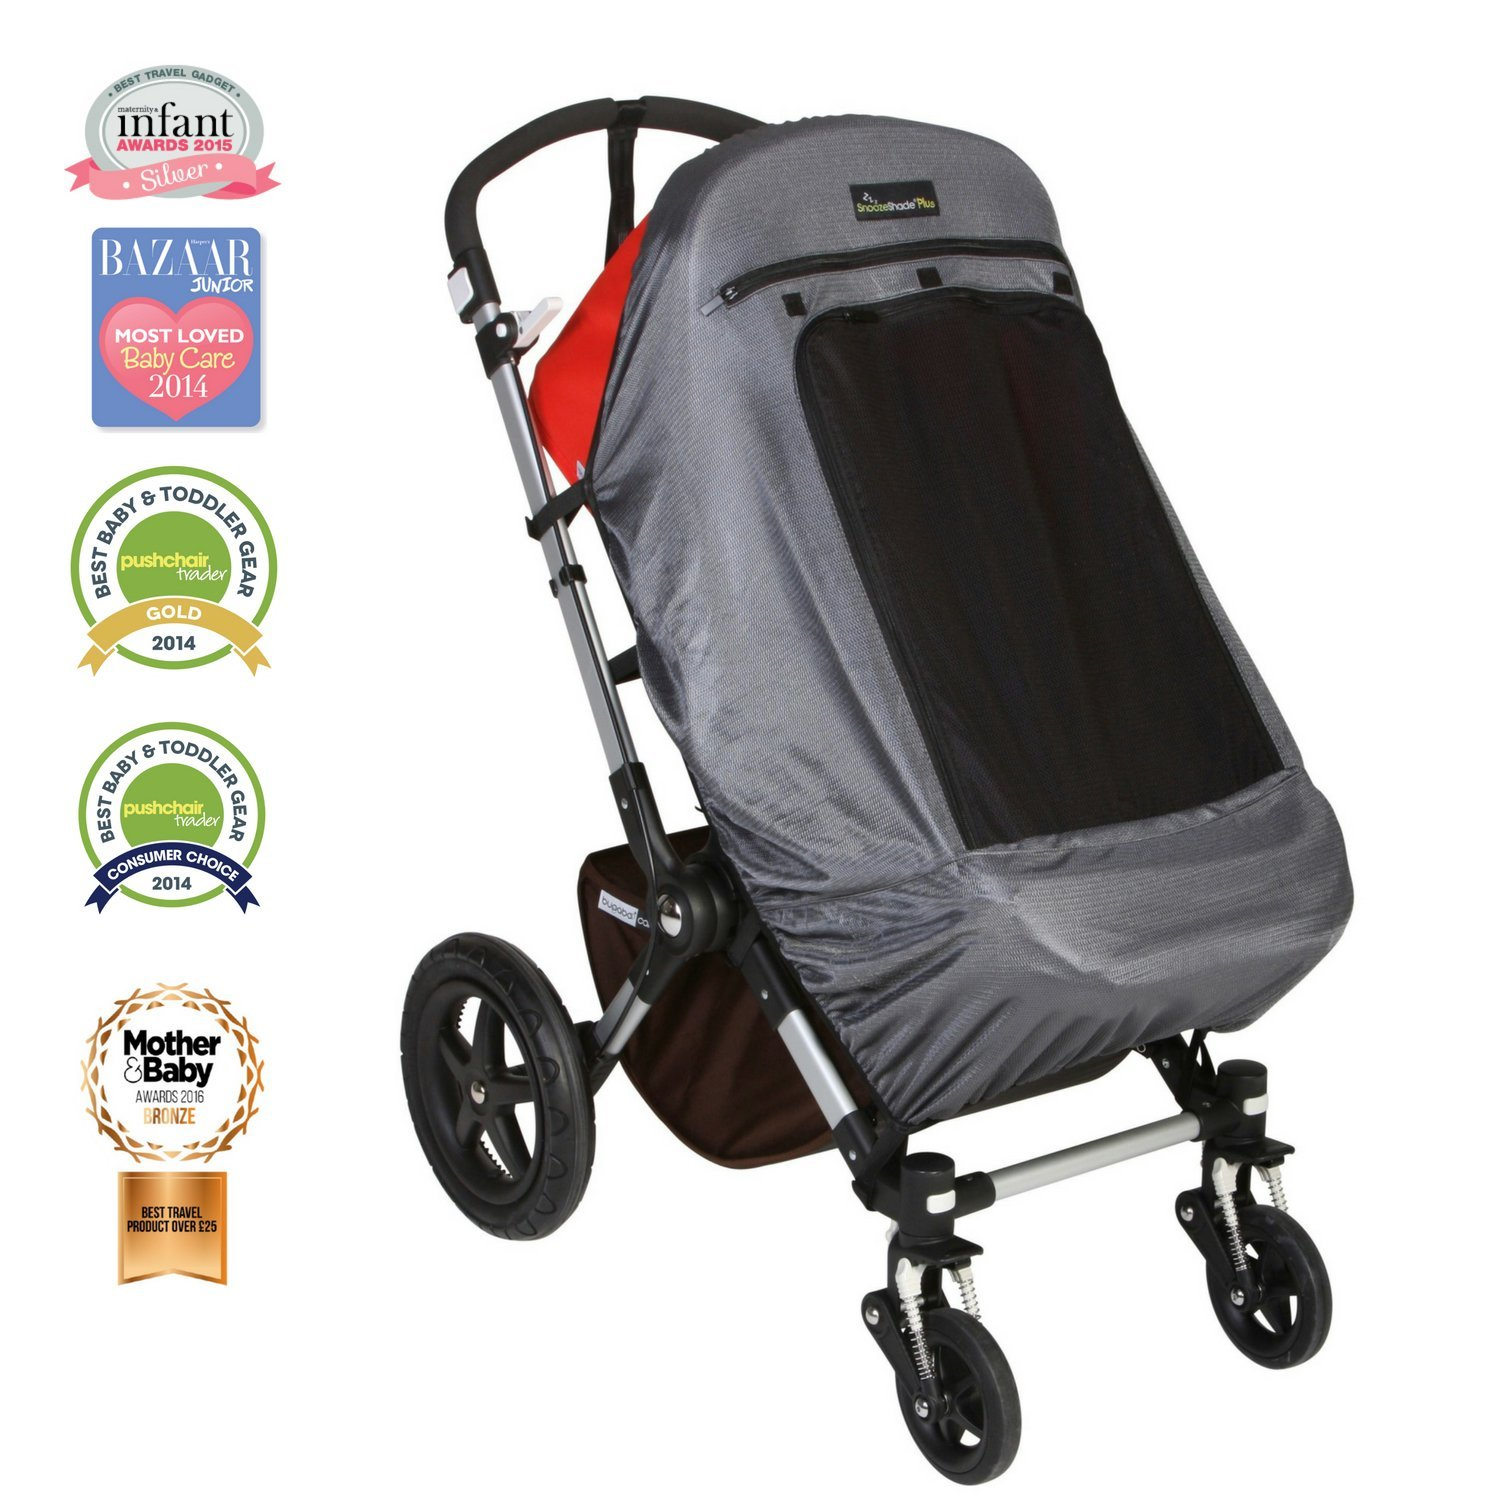 B00C9D1A4Q SnoozeShade Plus Deluxe | Universal fit sun shade for strollers | 360-degree sun and UV protection | Sleep shade and mosquito net | Recommended for 6m+ 71VOm53kHLL